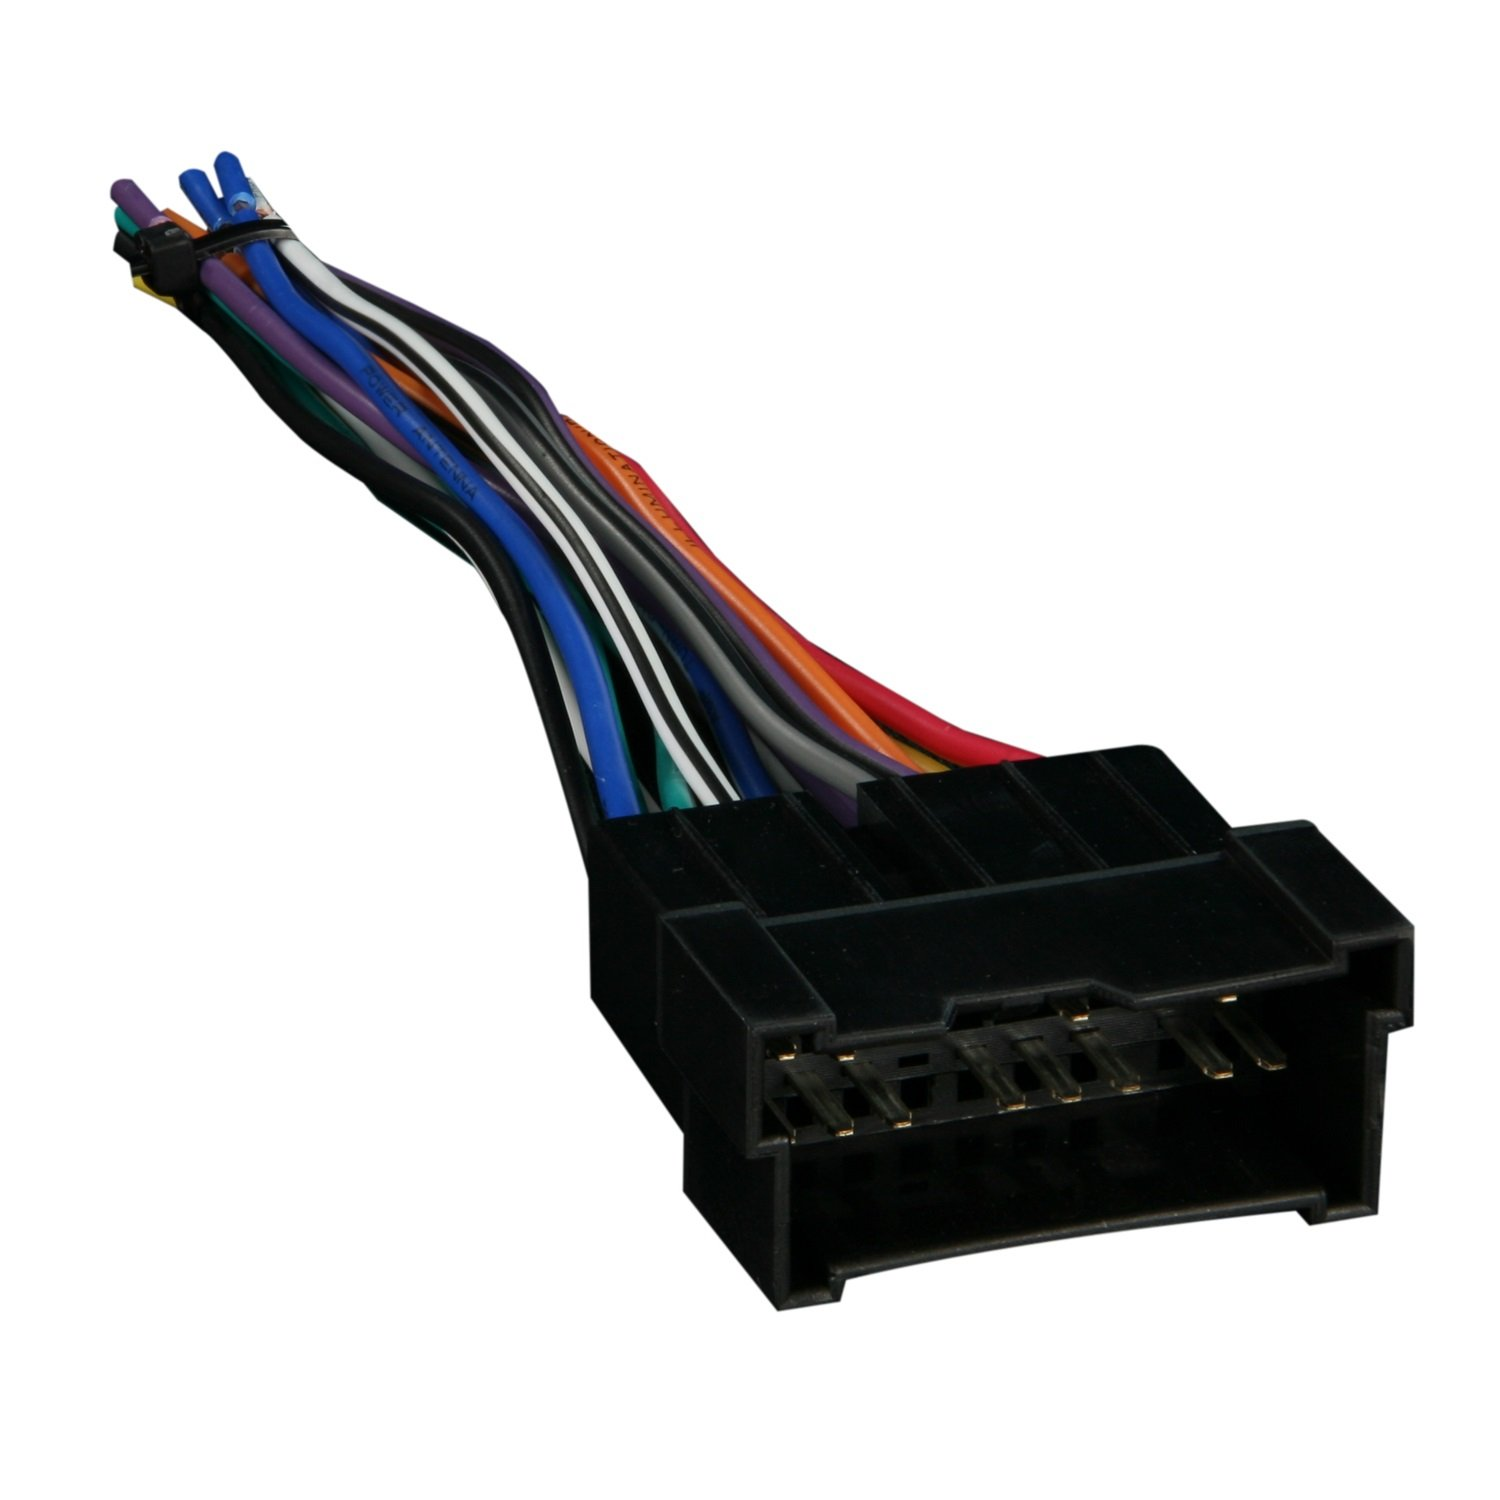 617yeBmOquL._SL1500_ amazon com metra 70 7301 radio wiring harness for hyundai kia 99 how to insert wire into harness at fashall.co